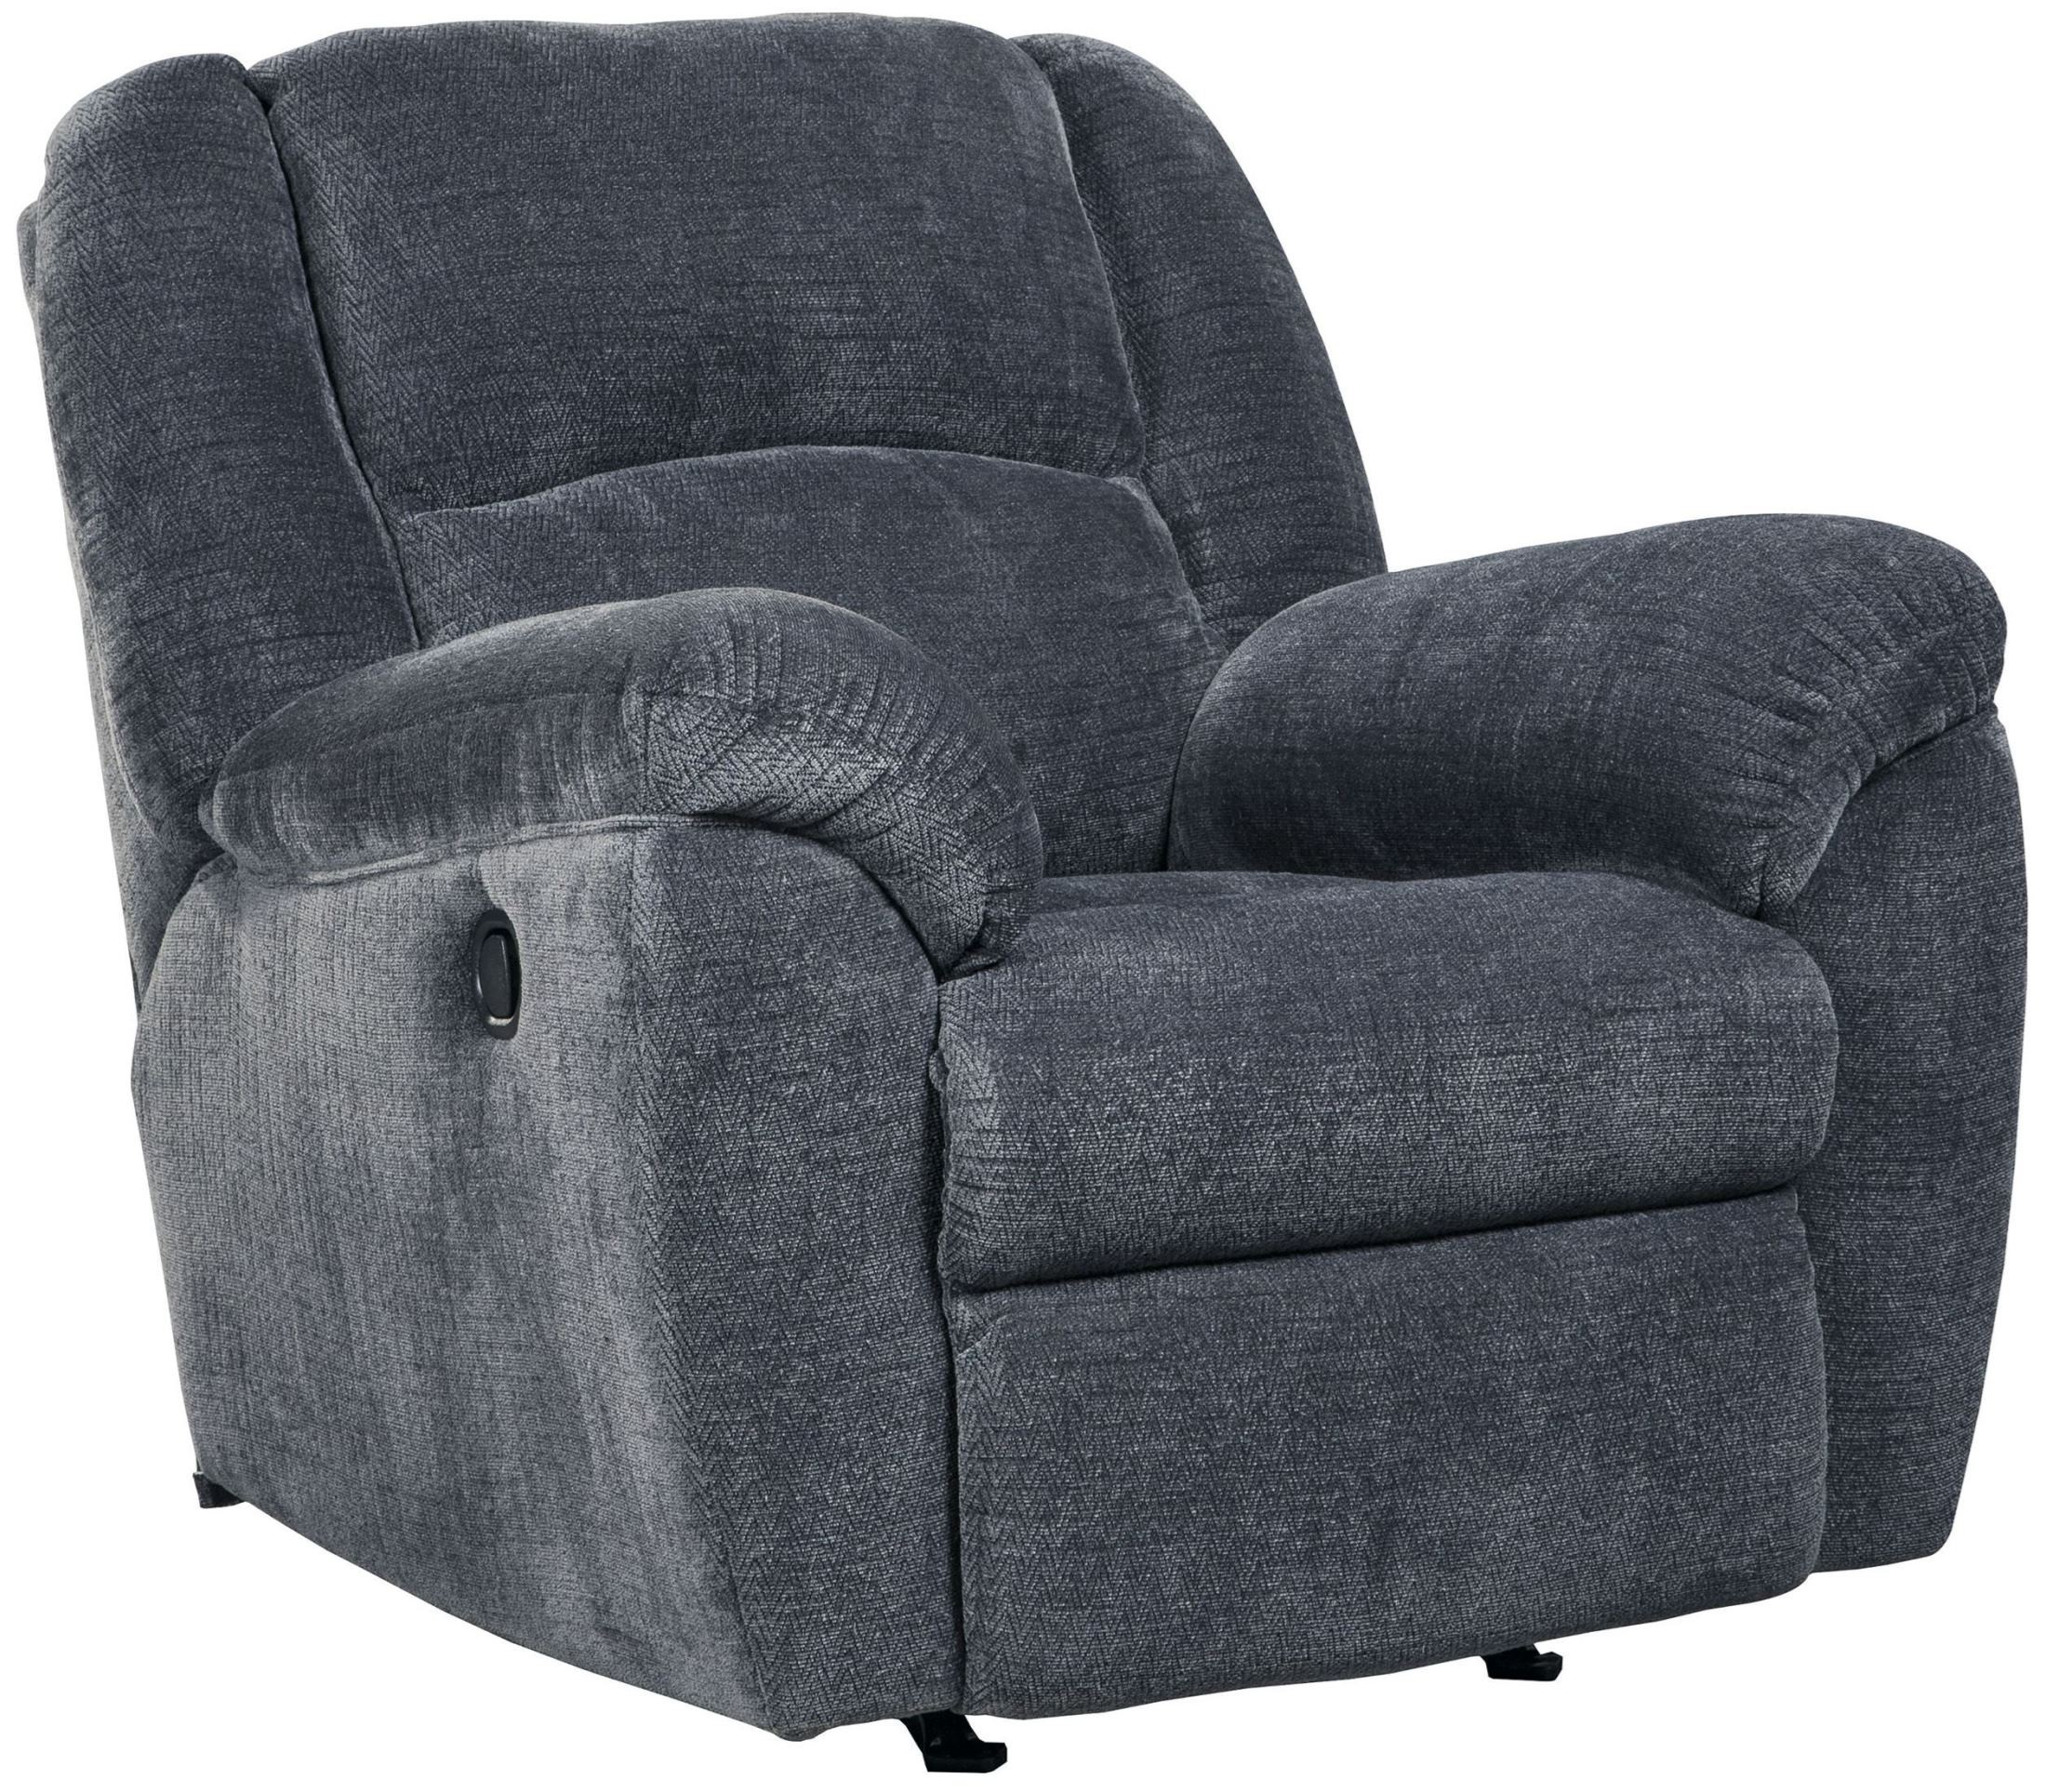 These 6 Pieces Of Colorful Furniture Are Absolute Must Haves: Timpson Indigo Rocker Recliner From Ashley